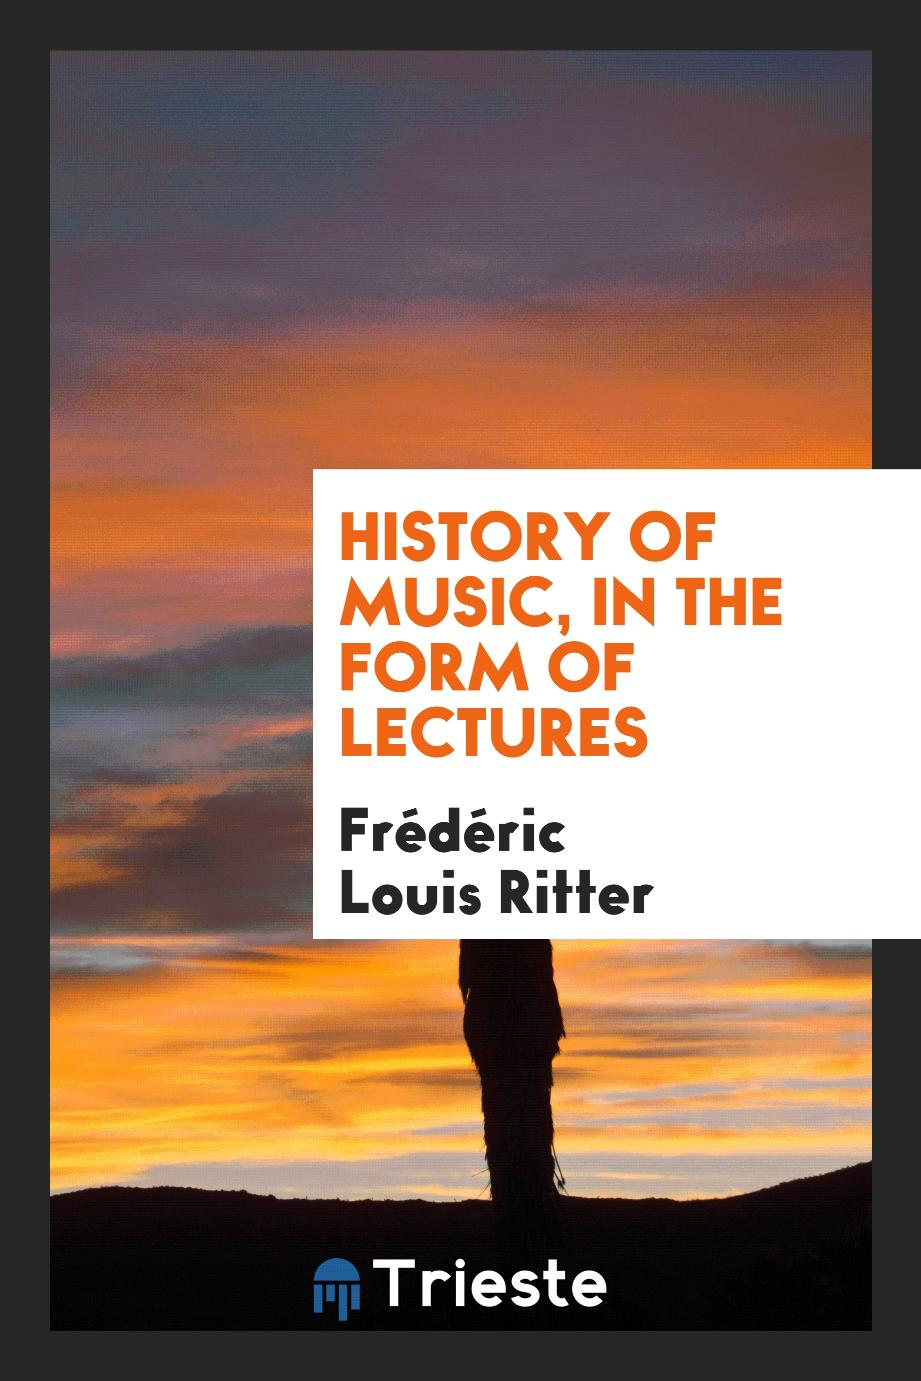 History of music, in the form of lectures